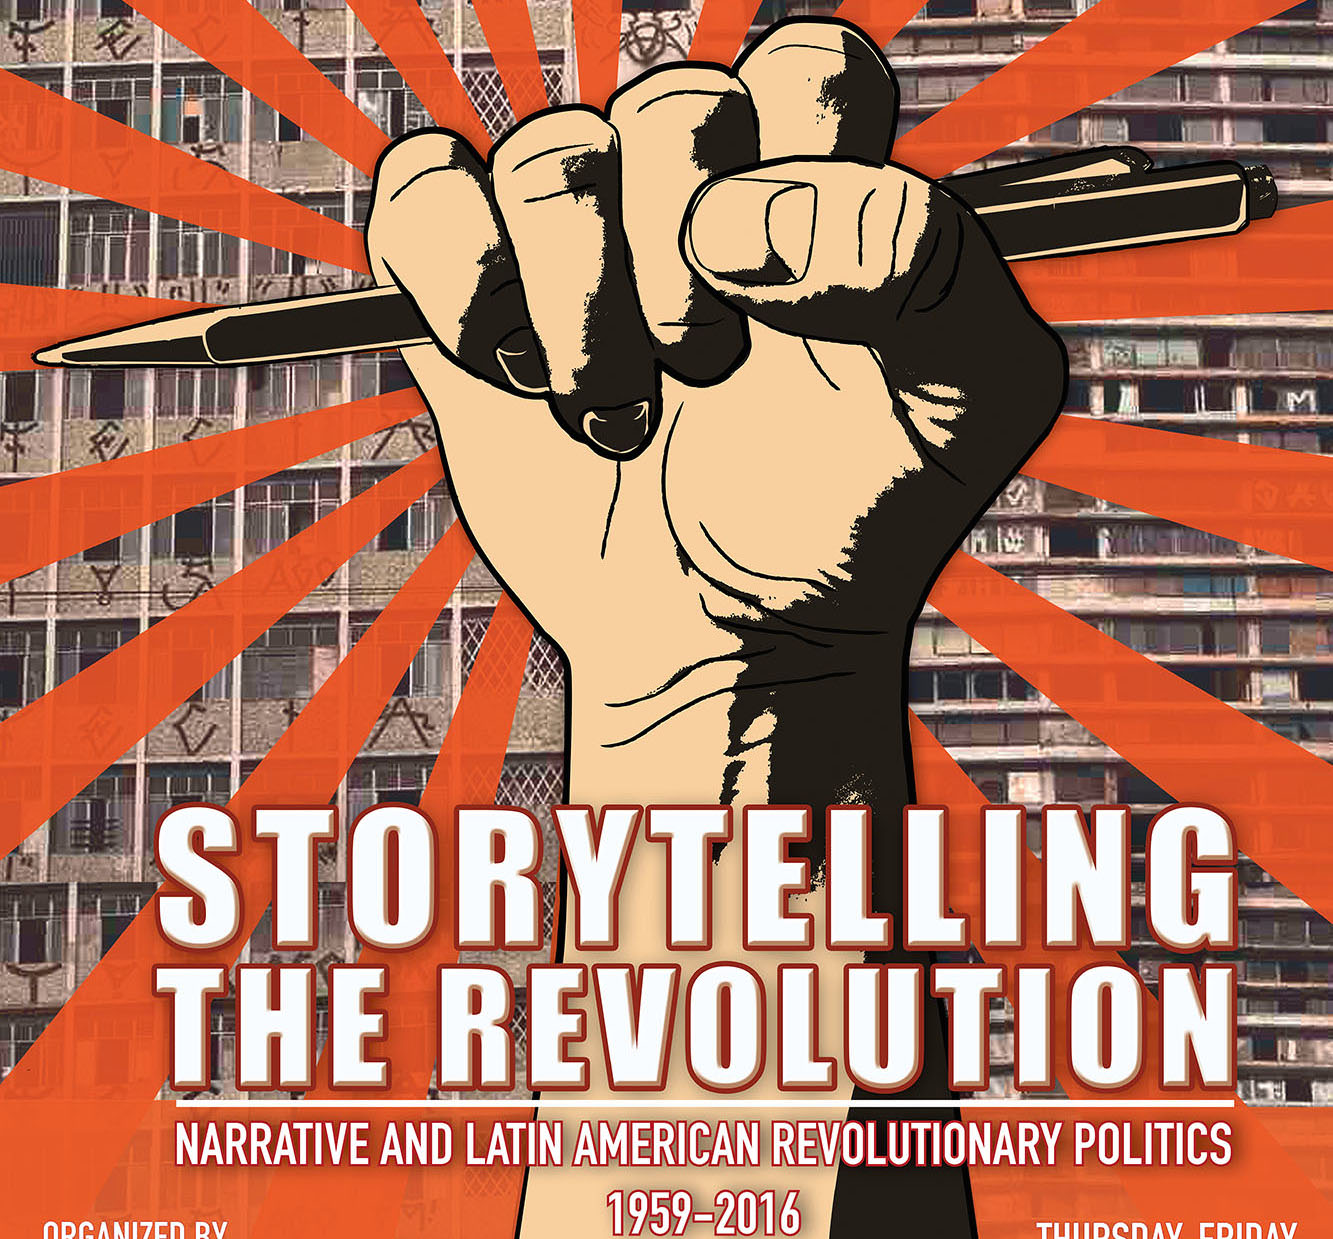 image from Storytelling the Revolution is available here: https://livestream.com/nyu-tv/kjccsymposium